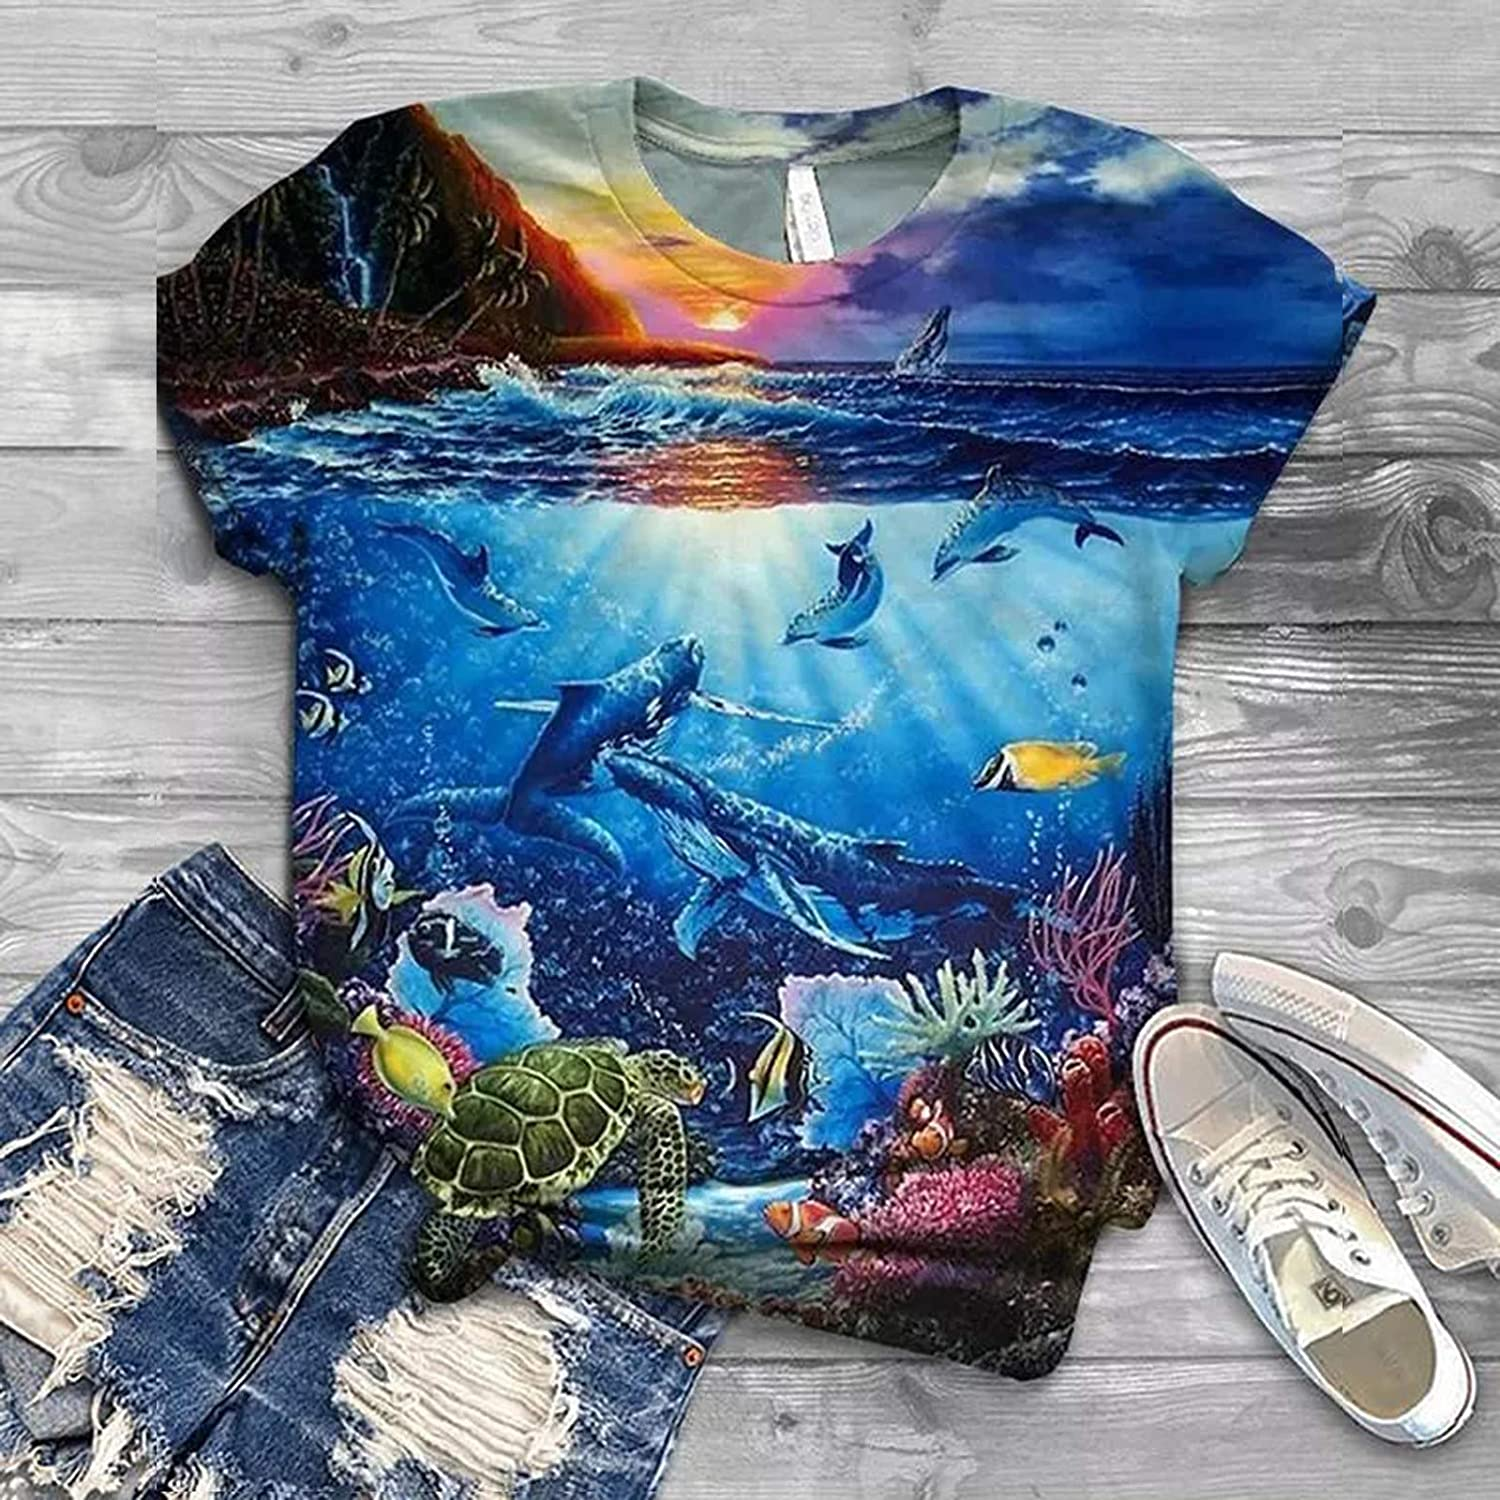 Crewneck Short Sleeve Shirts for Women Hotkey Womens Summer Tops Starry Sky Ocean Dolphin Printed T Shirts Tees Blouse